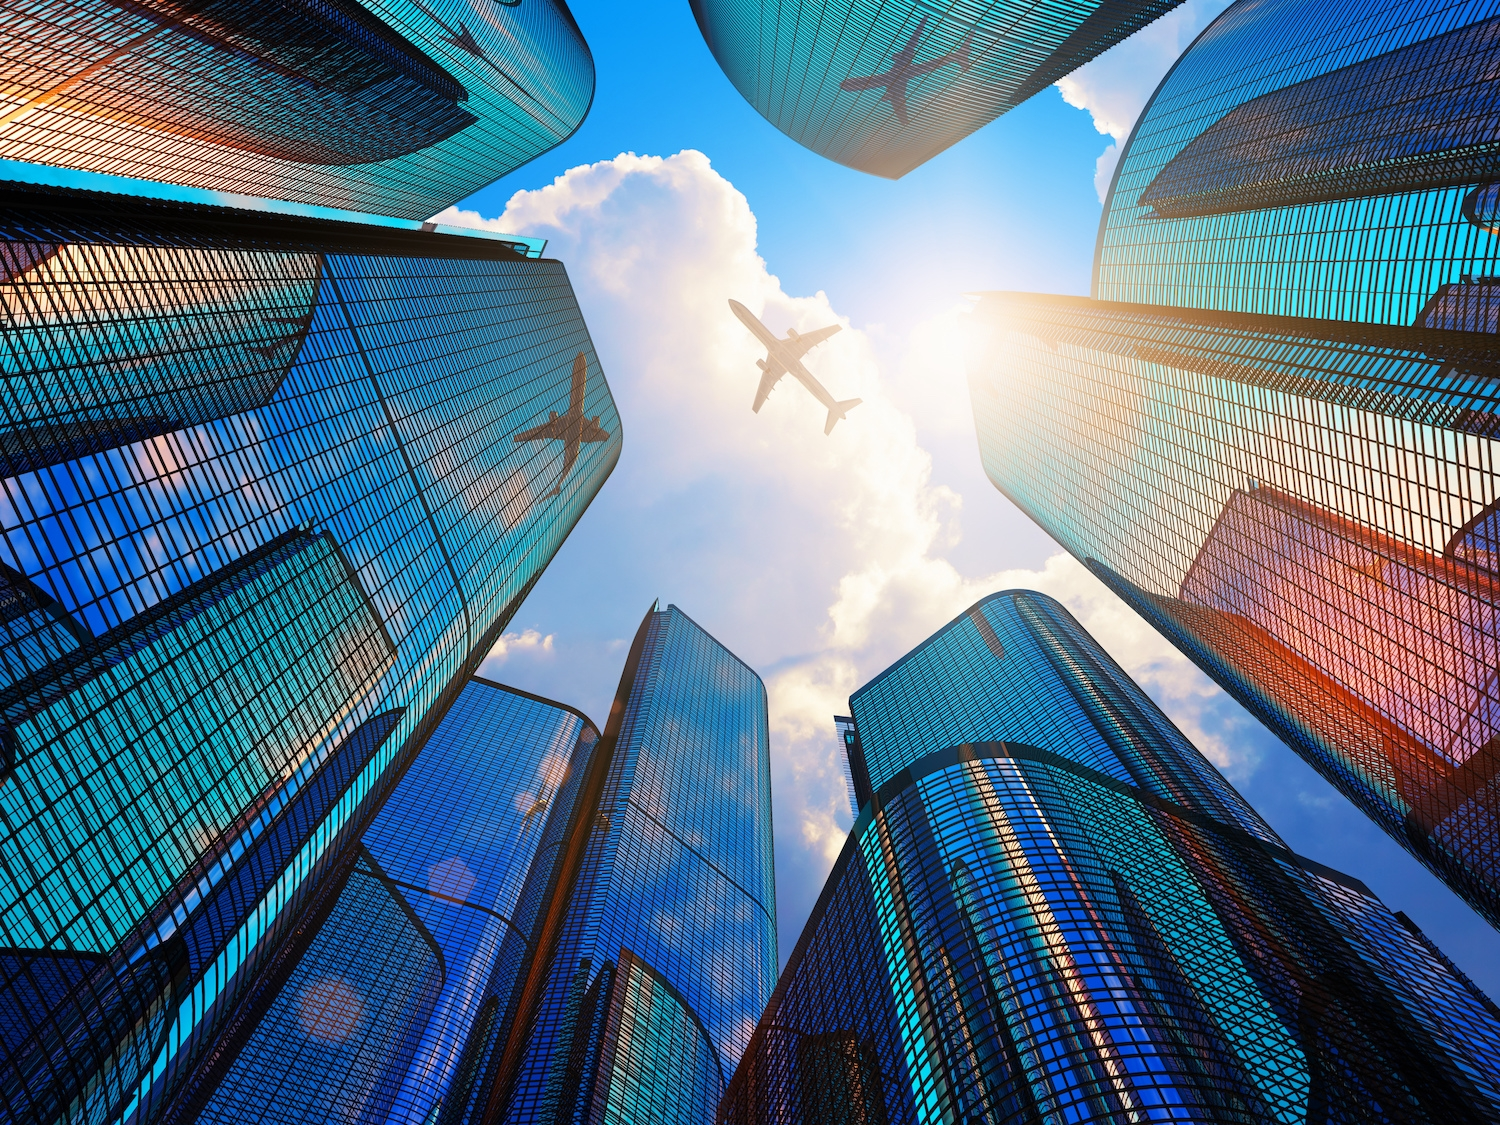 Jet flying above buildings